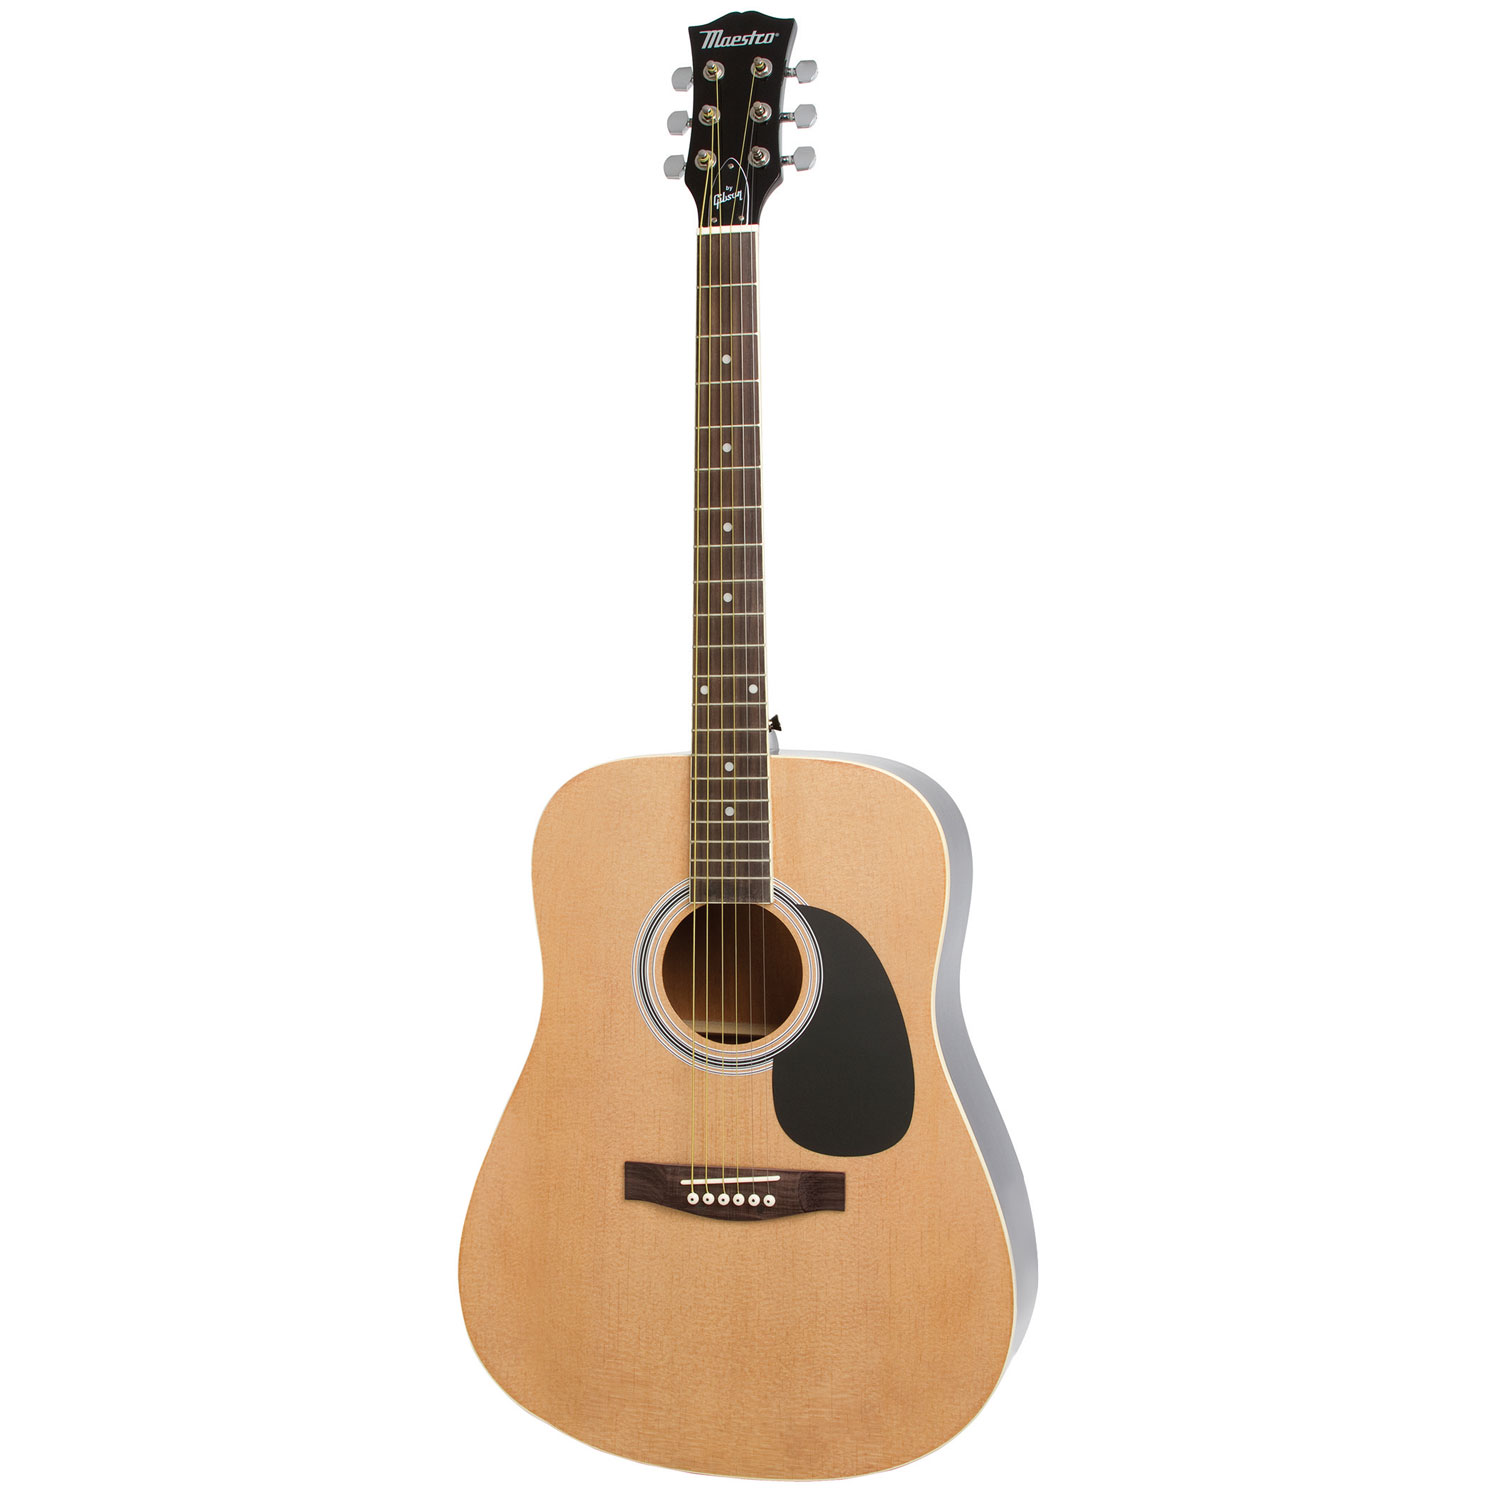 maestro by gibson 41 acoustic guitar pack natural acoustic